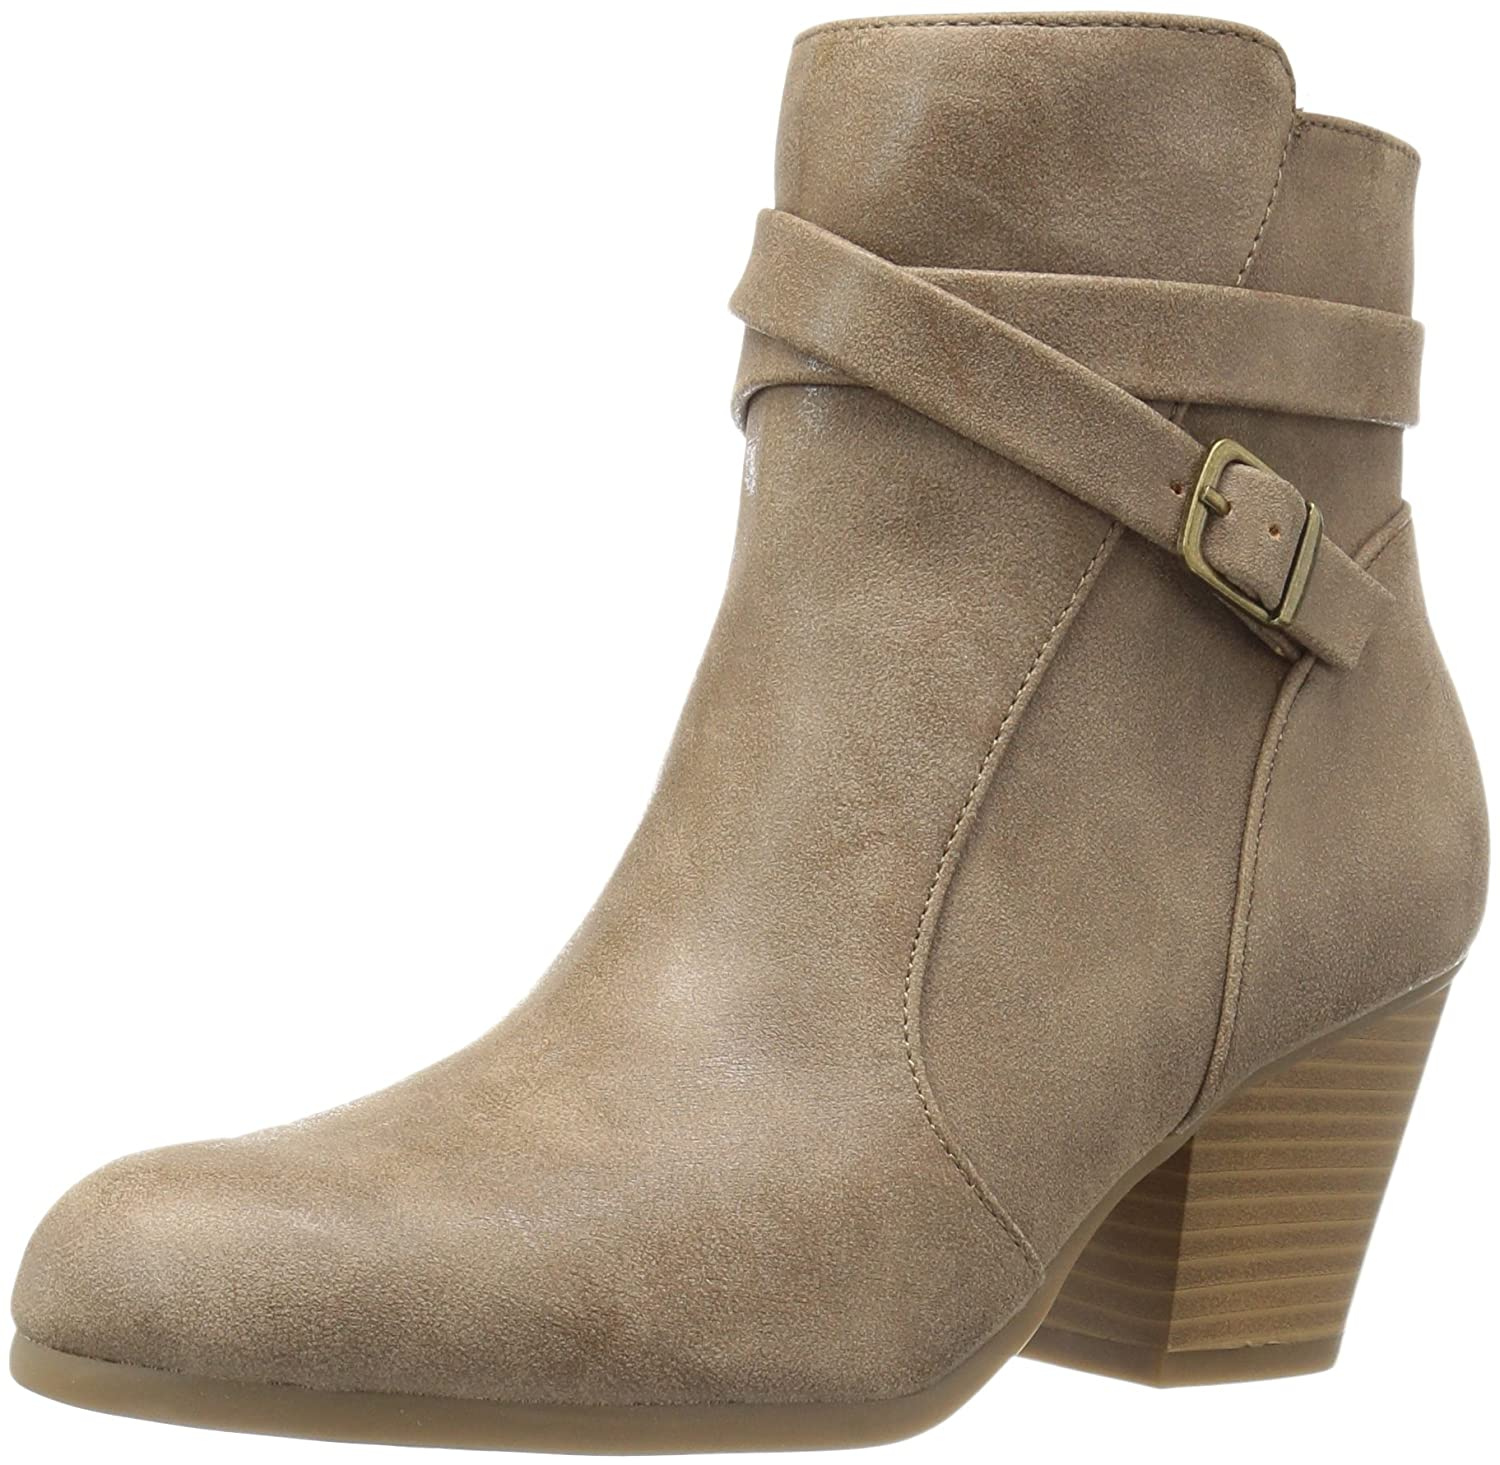 Aerosoles A2 by Women's Invitation Boot B01DBDVIEY 7.5 W US|Taupe